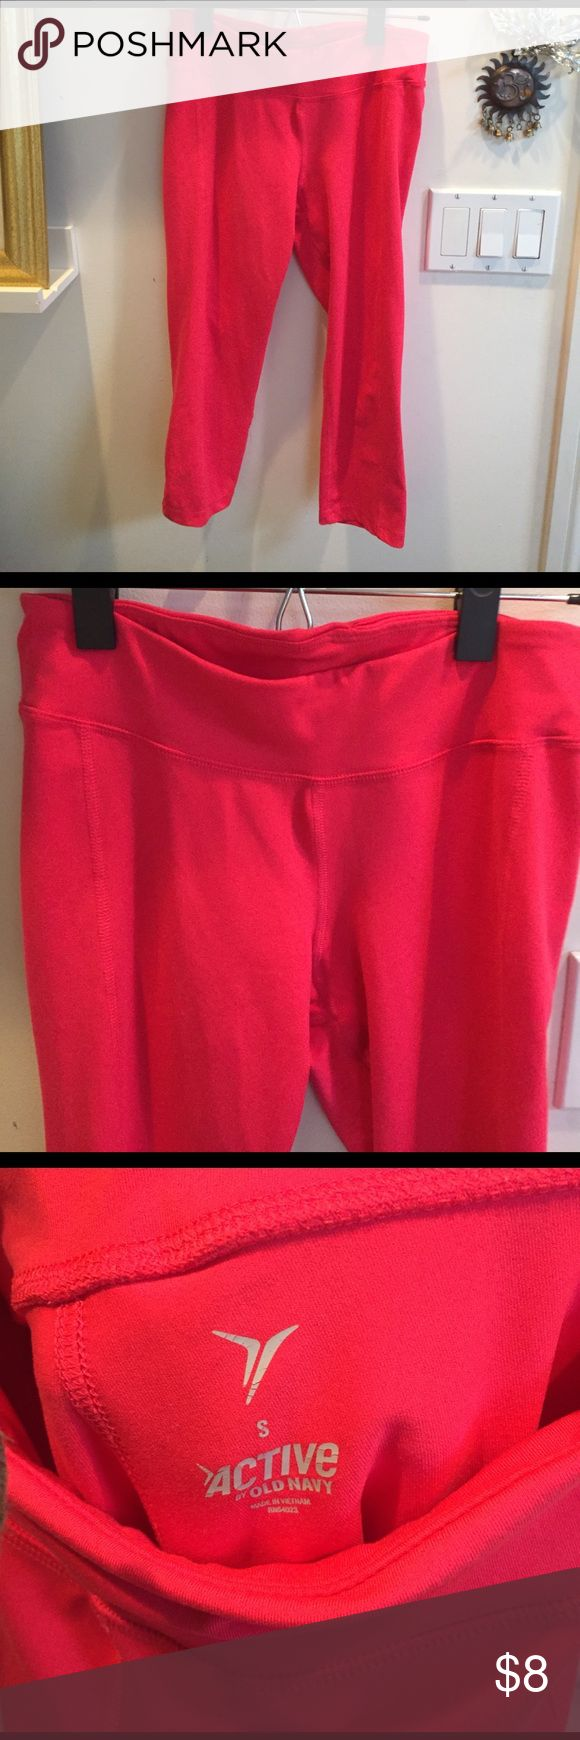 Bright Pink Yoga Pant Crops Old Navy brand bright yoga pants. Stretchy and cute! Falls below the knee Old Navy Pants Leggings